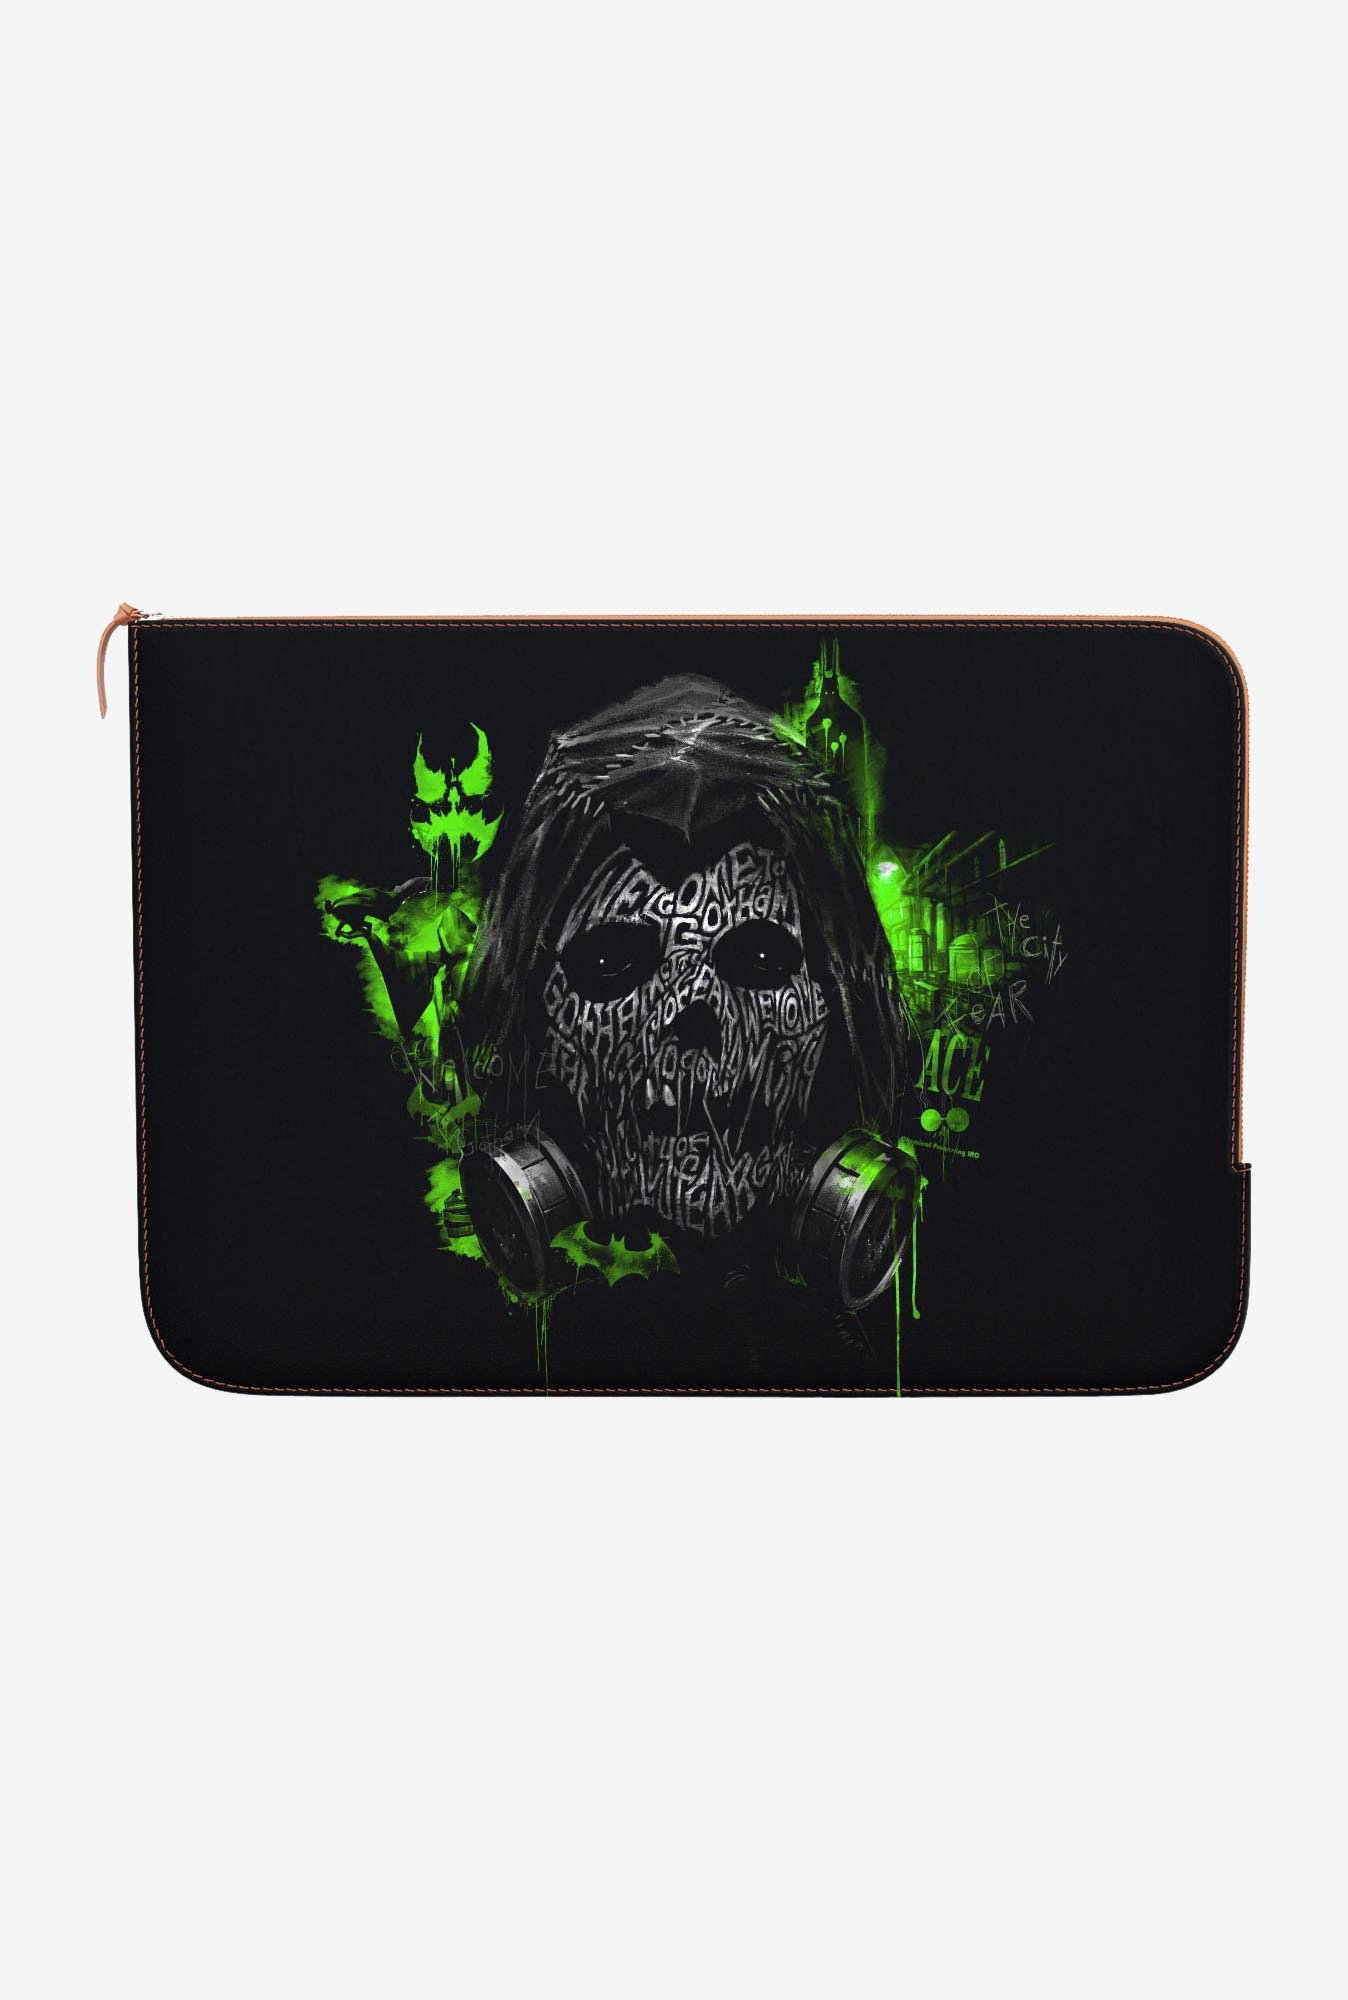 DailyObjects Scarecrow Green MacBook Pro 15 Zippered Sleeve